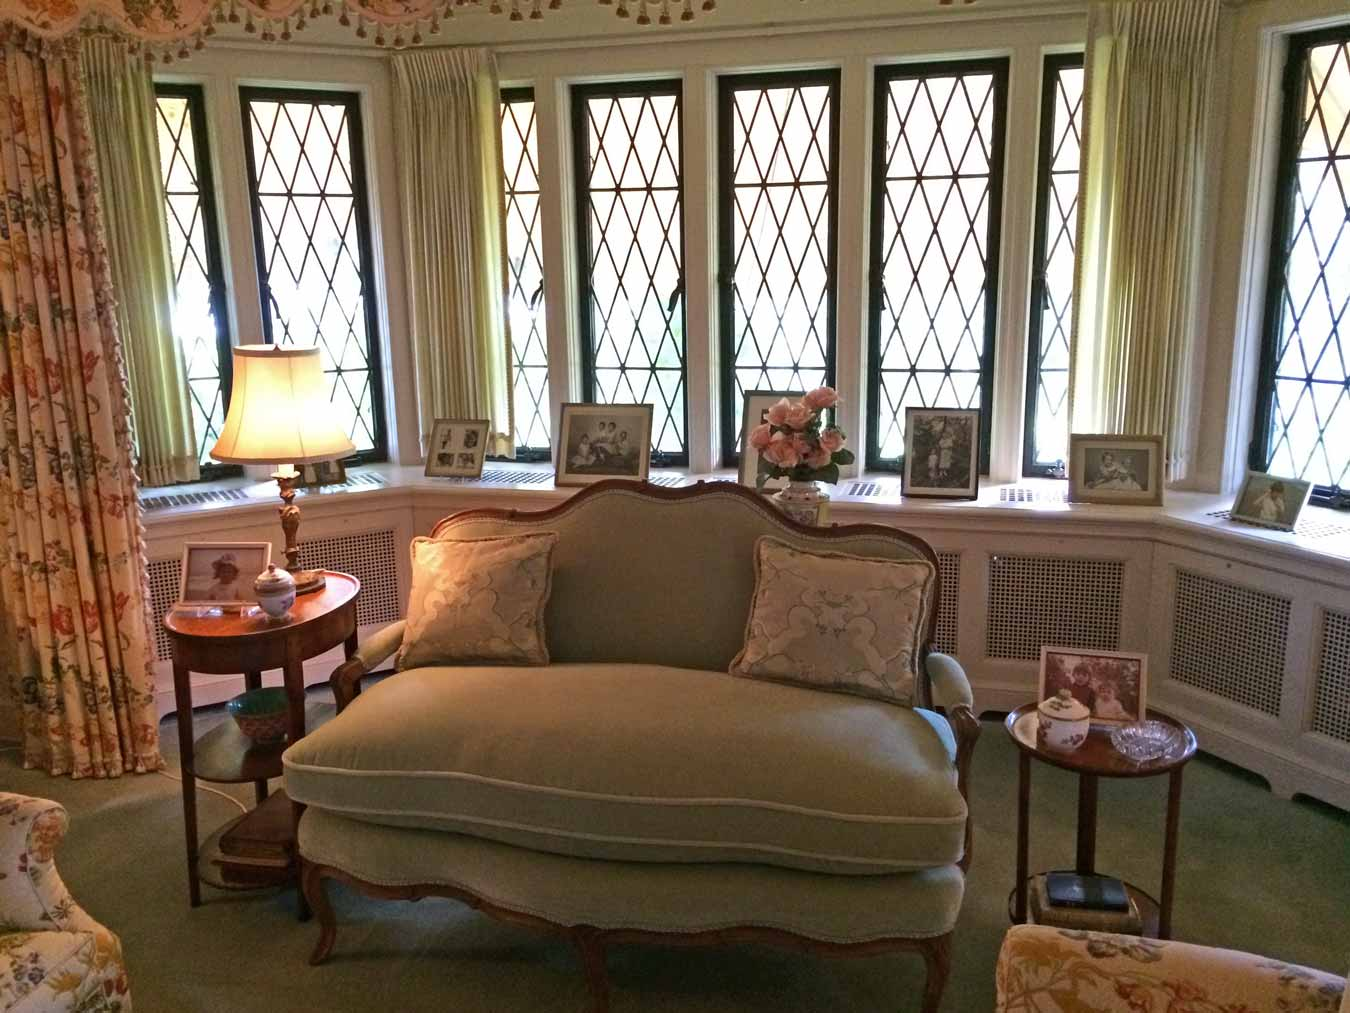 Wading In Big Shoes: Inside The Edsel And Eleanor Ford House // Take a peek inside the Edsel and Eleanor Ford House, Grounds, and Gardens in Grosse Pointe Shores, Michigan! Learn what you'll see during the tour here.